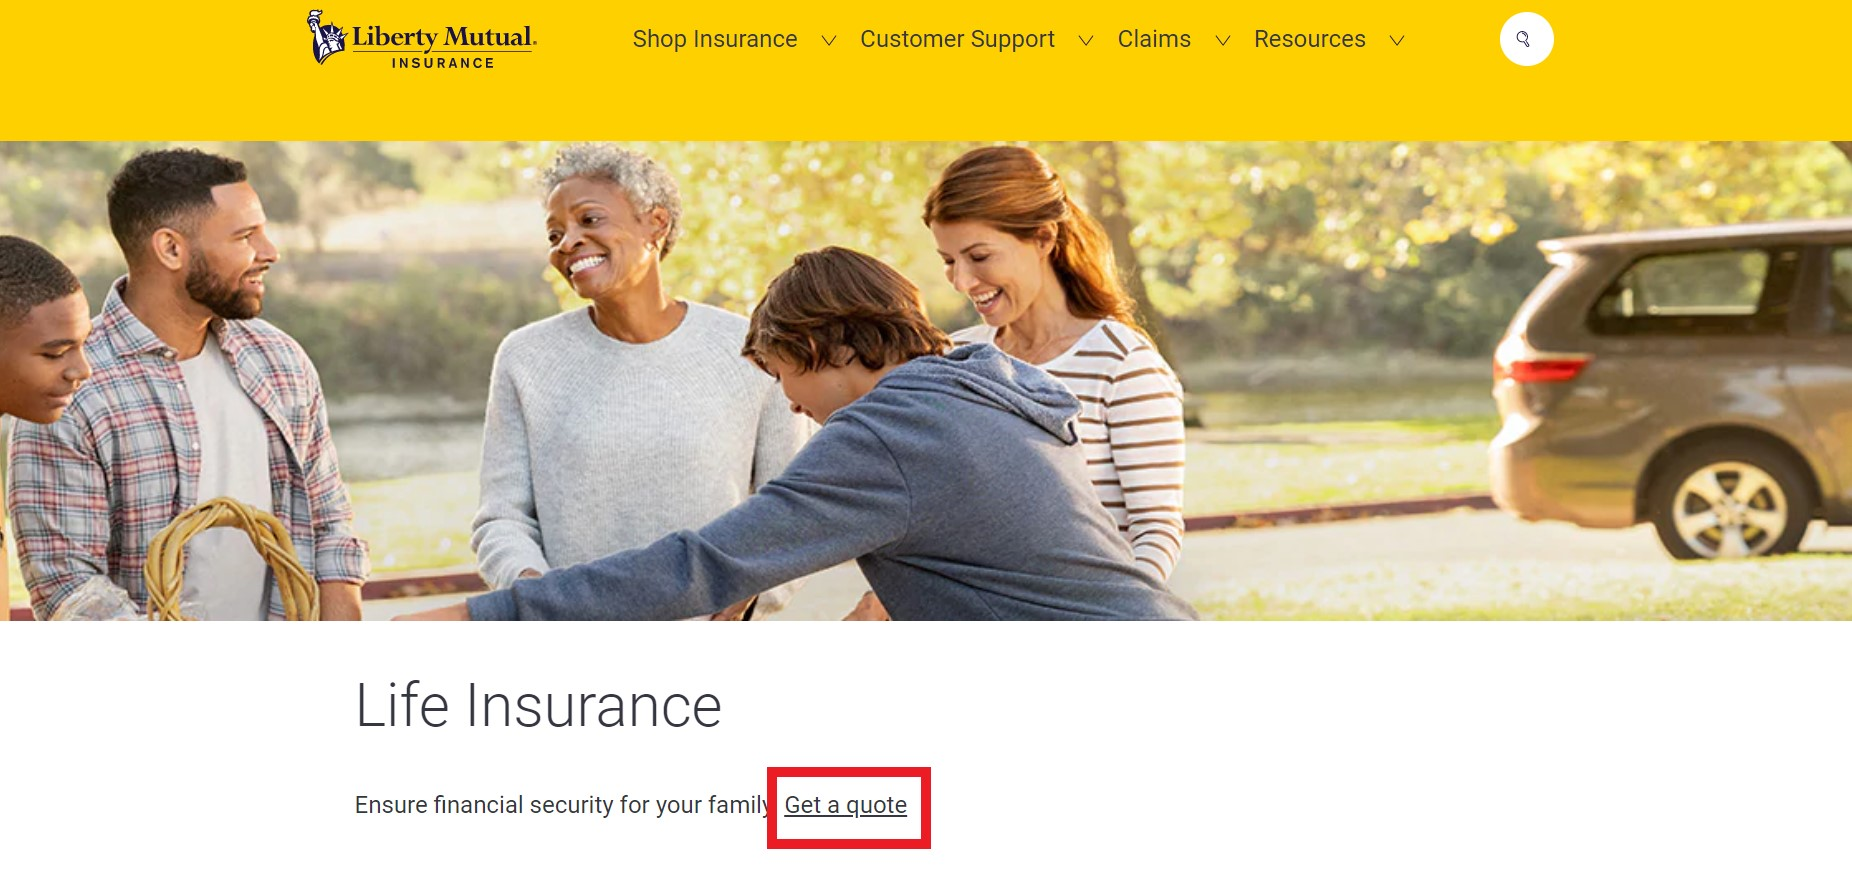 Liberty Mutual website Get a quote link